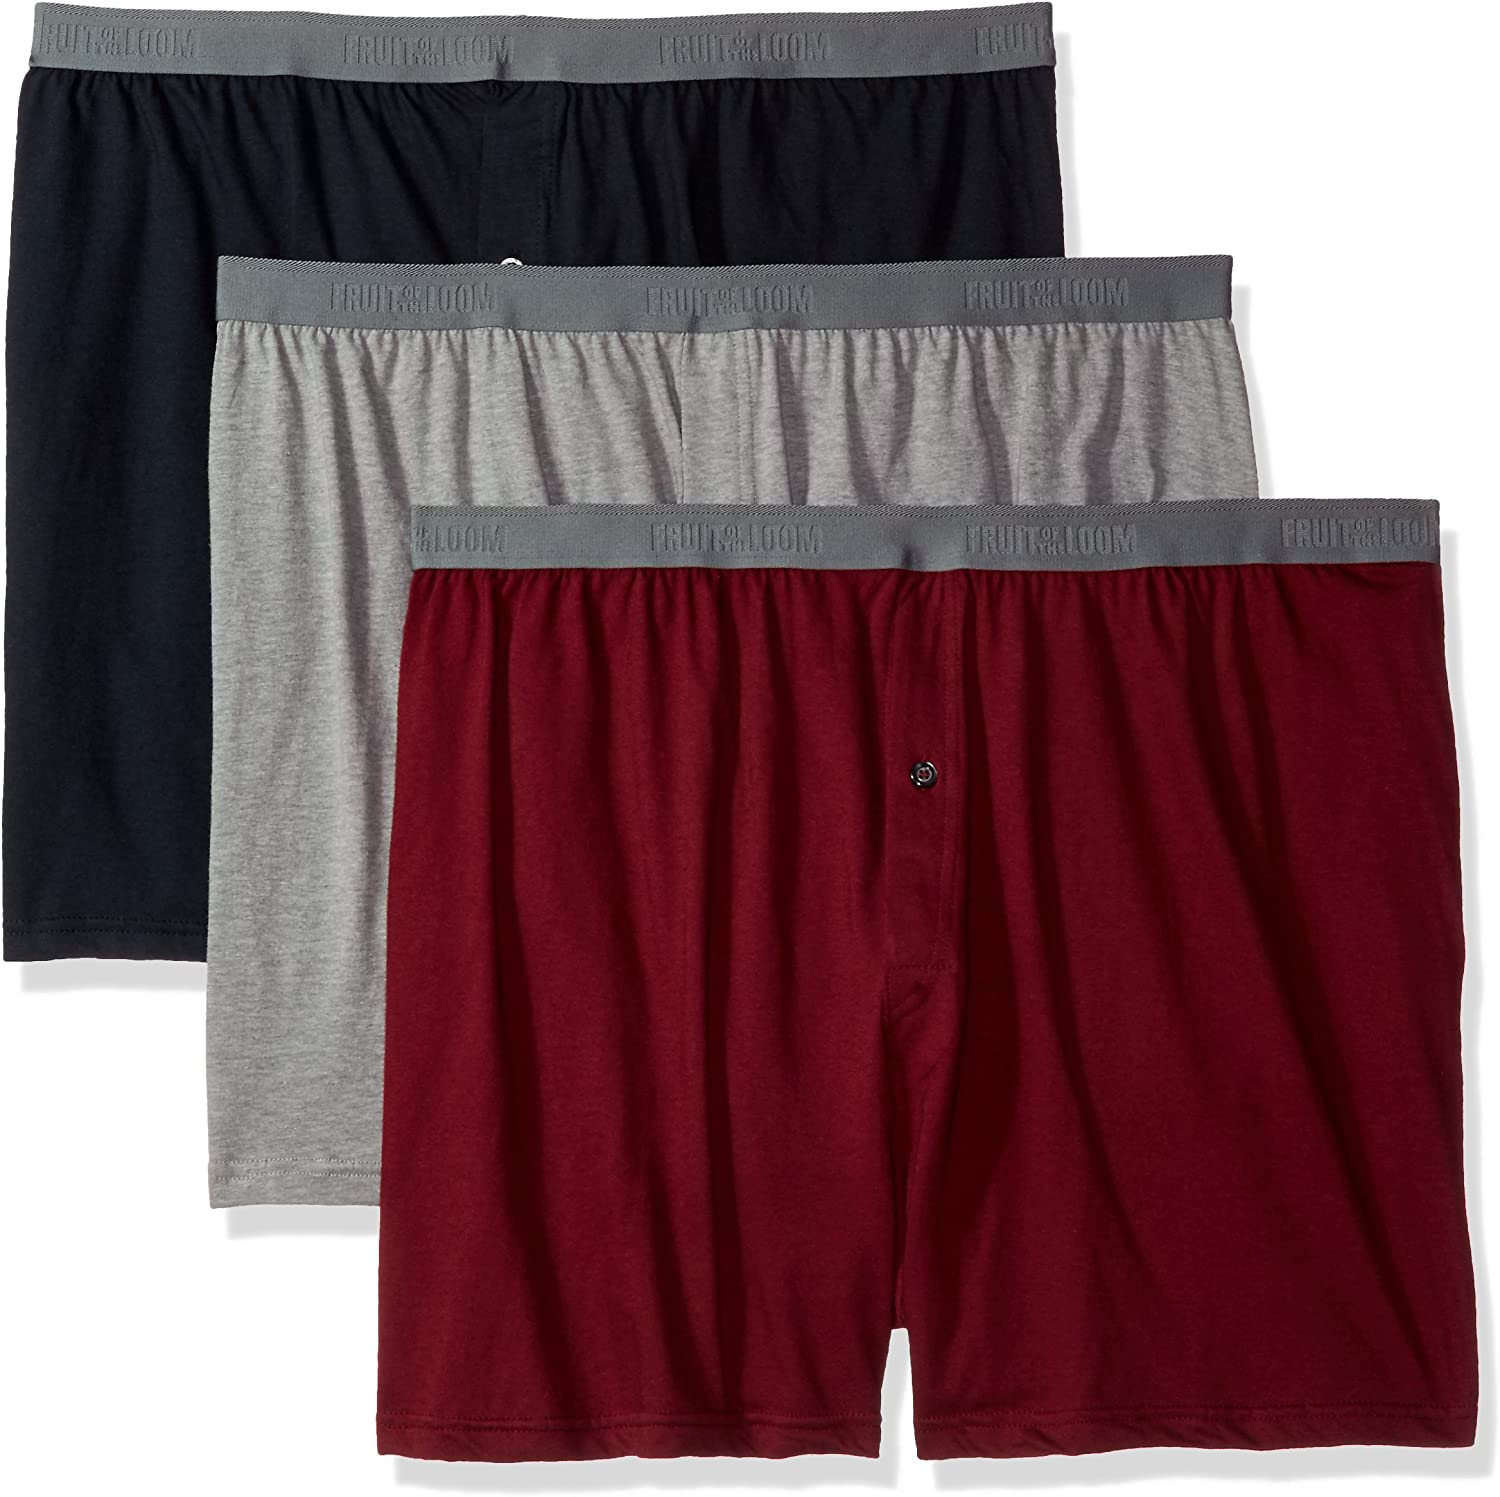 Fruit of the Loom Men's 3-Pack Premium Big Man Knit Boxer, assorted